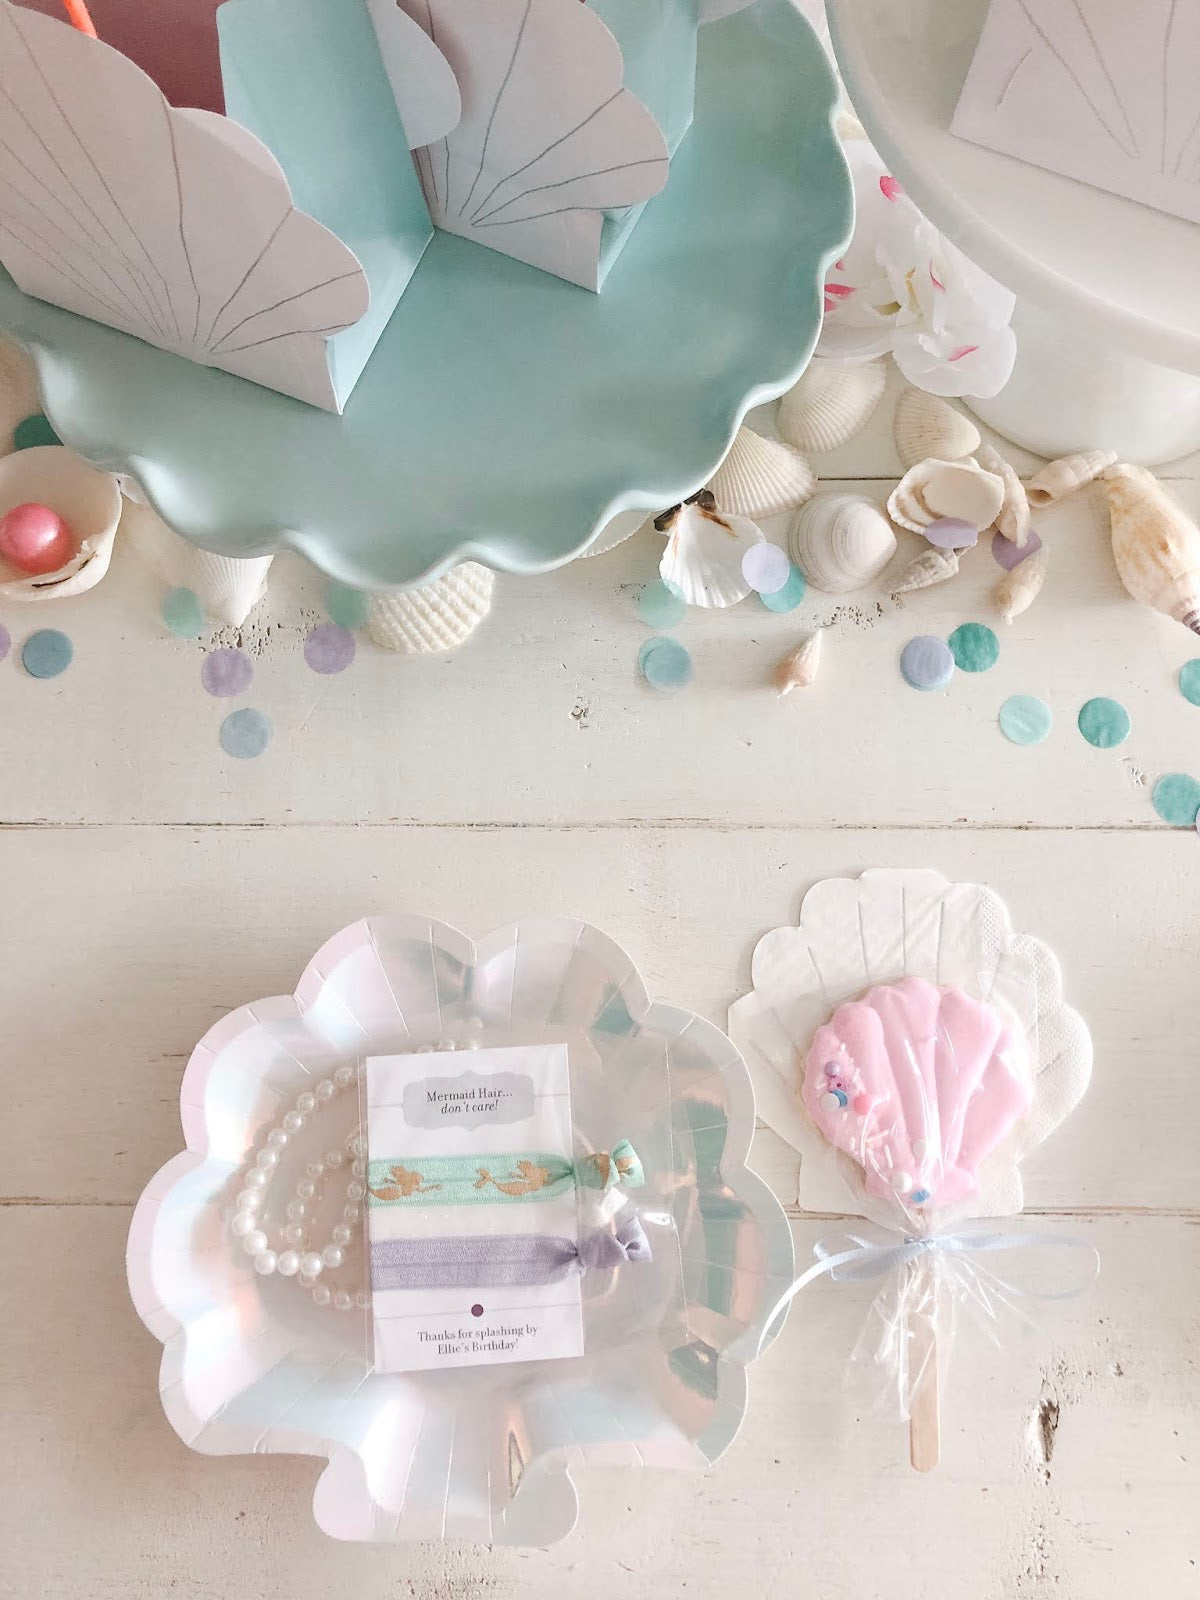 Make a Splash with this Mermaid Birthday Party!